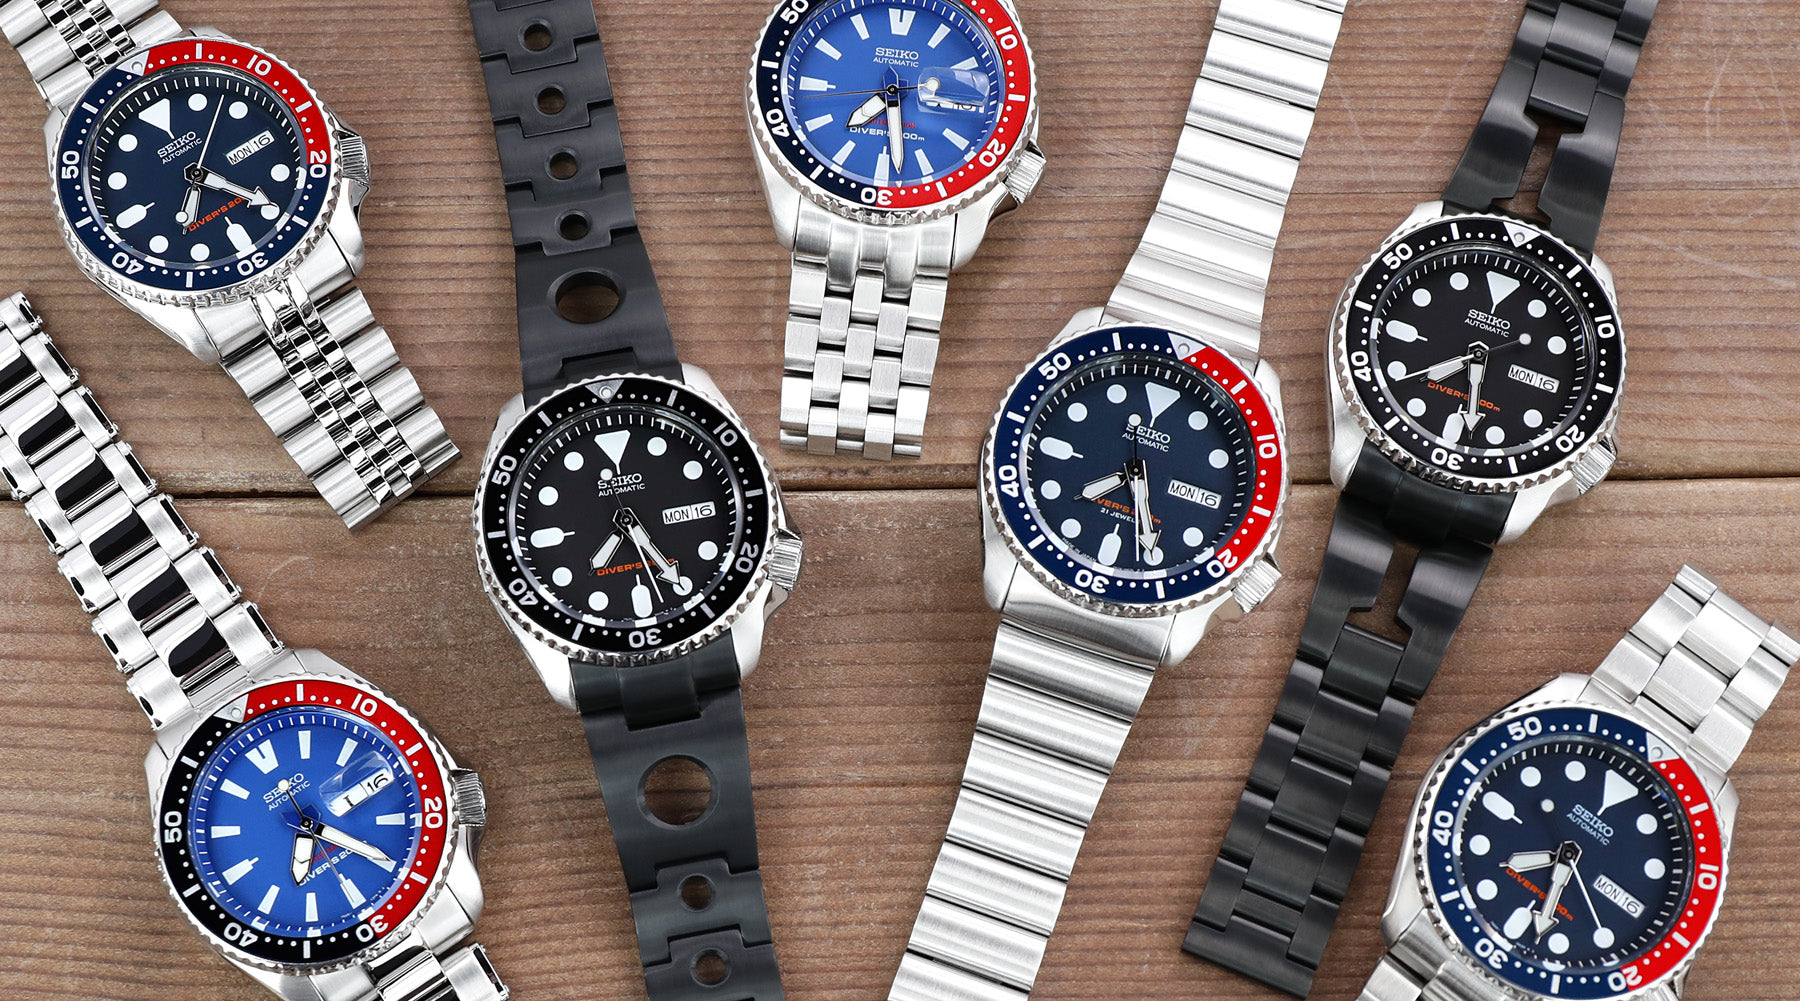 Seiko SKX007 vs SKX009  Seiko watch bands